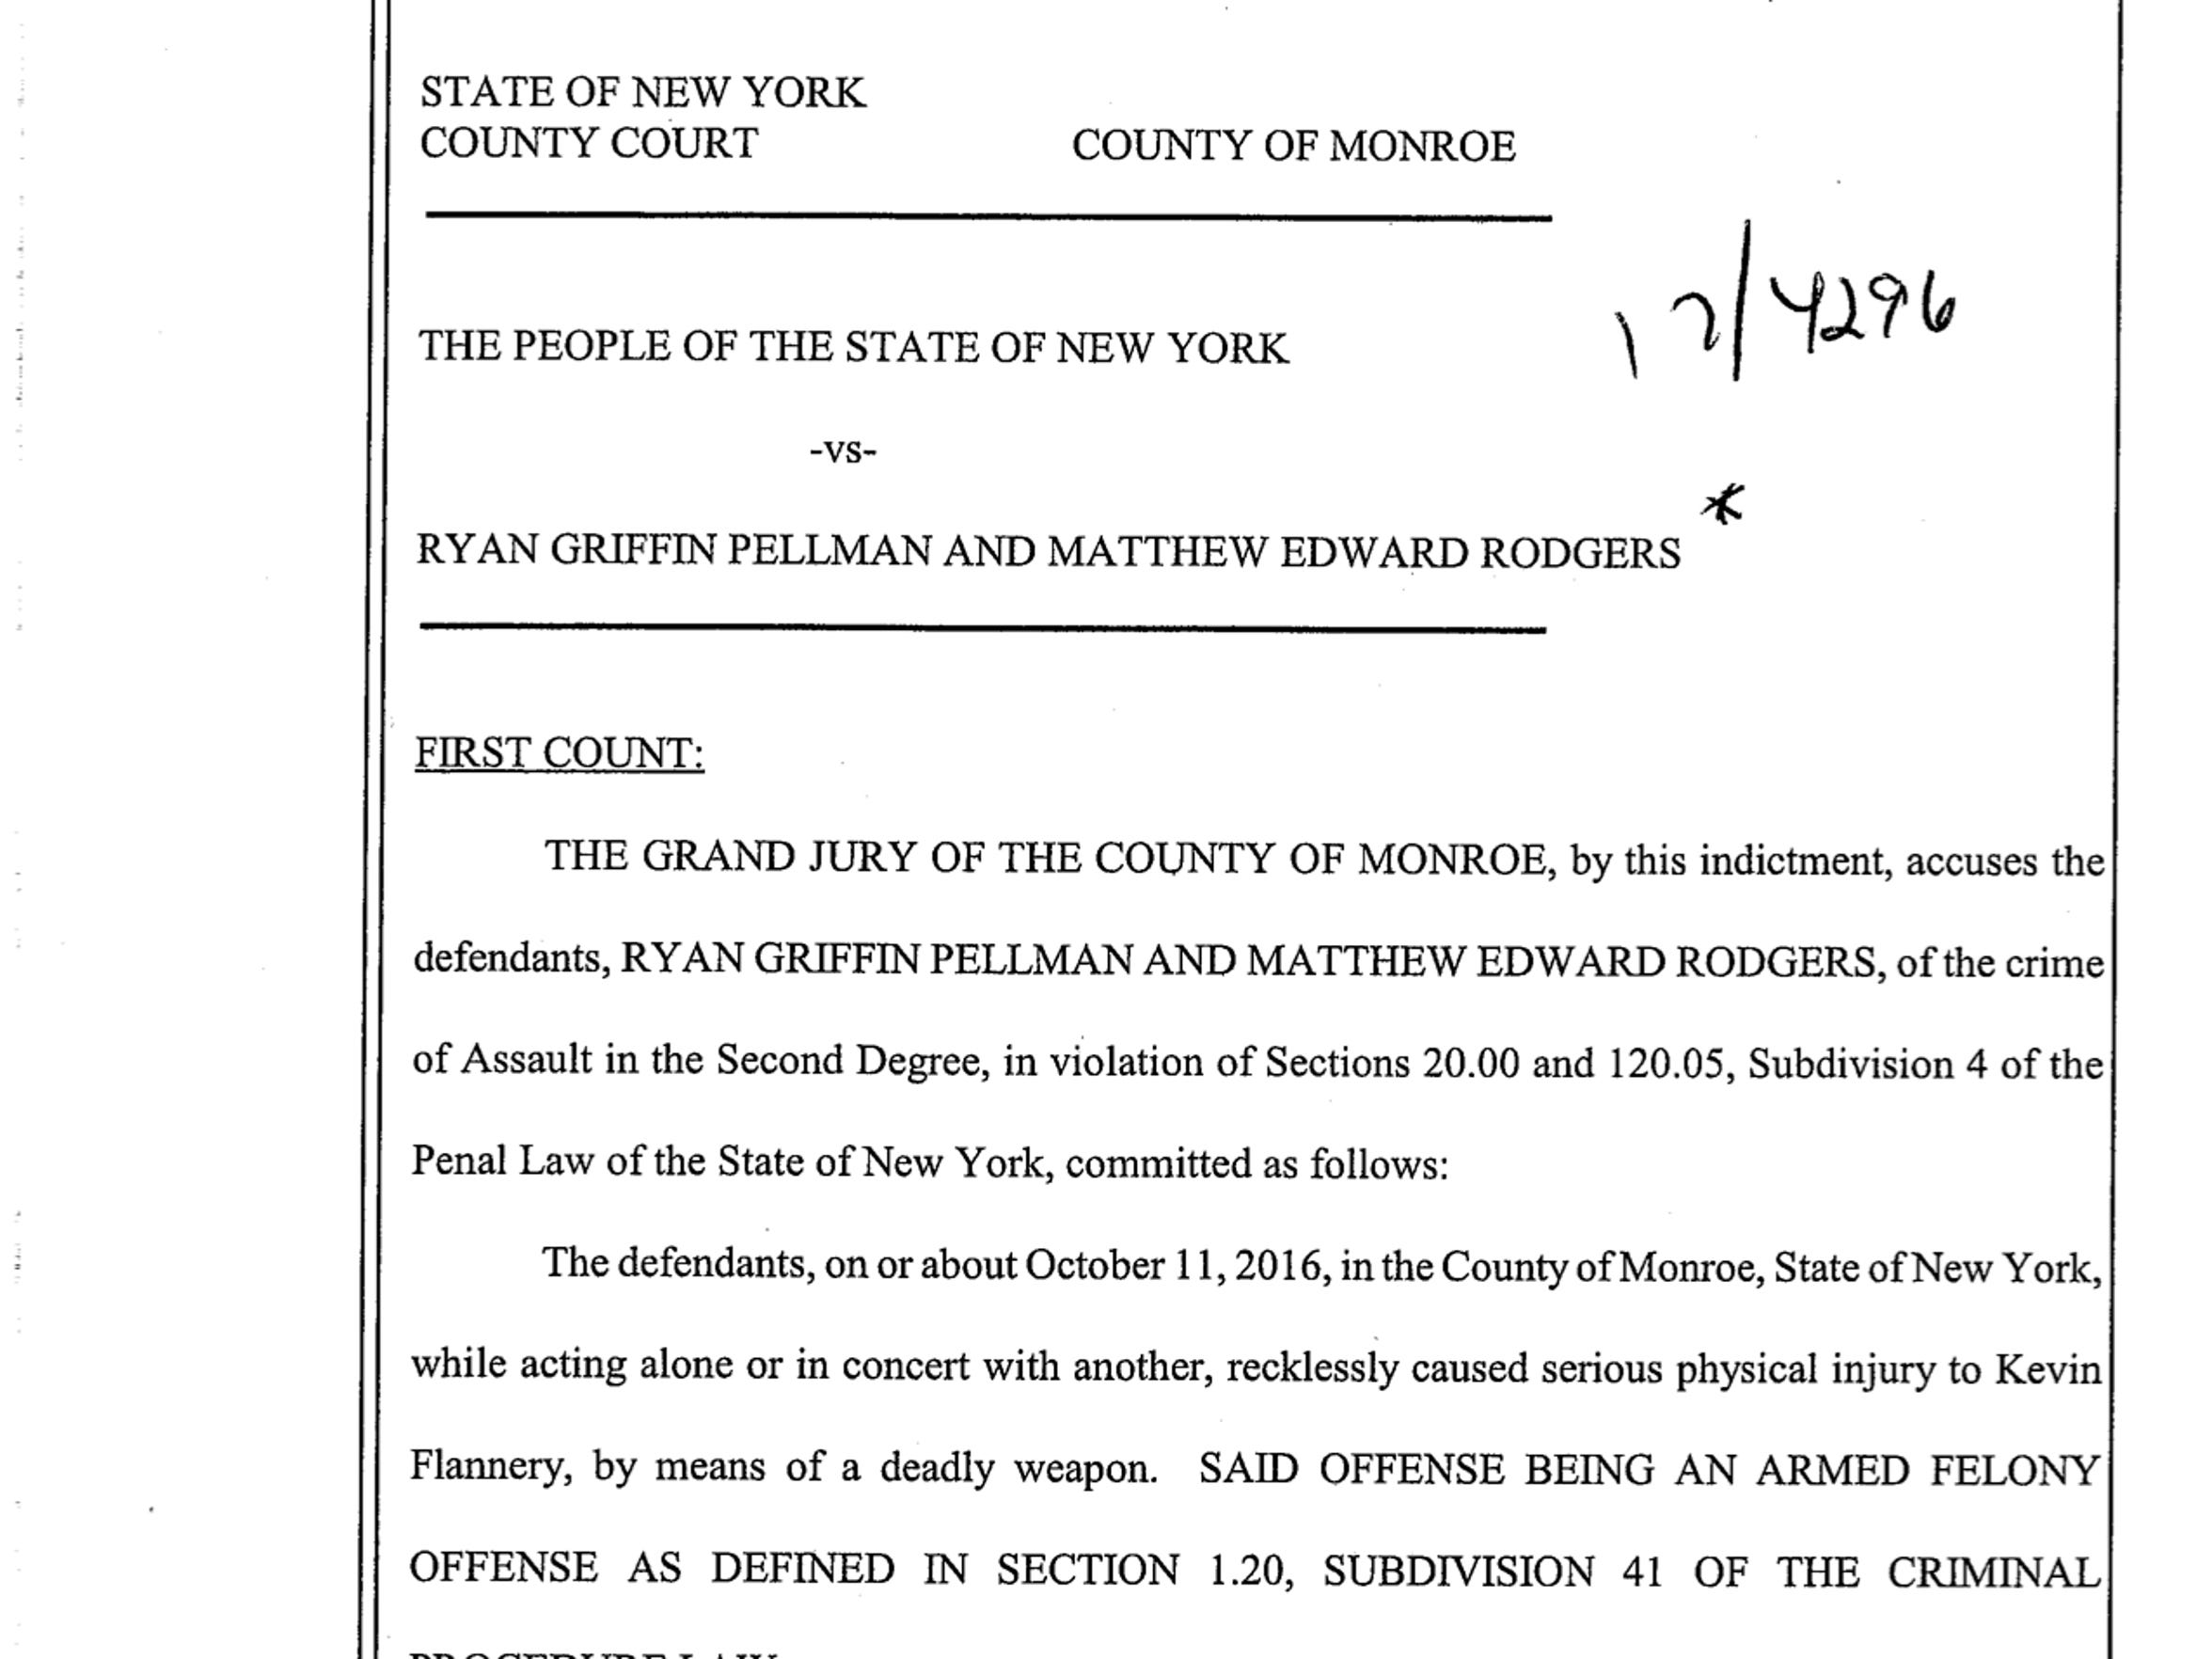 A copy of the indictment against Ryan Pellman and Matthew